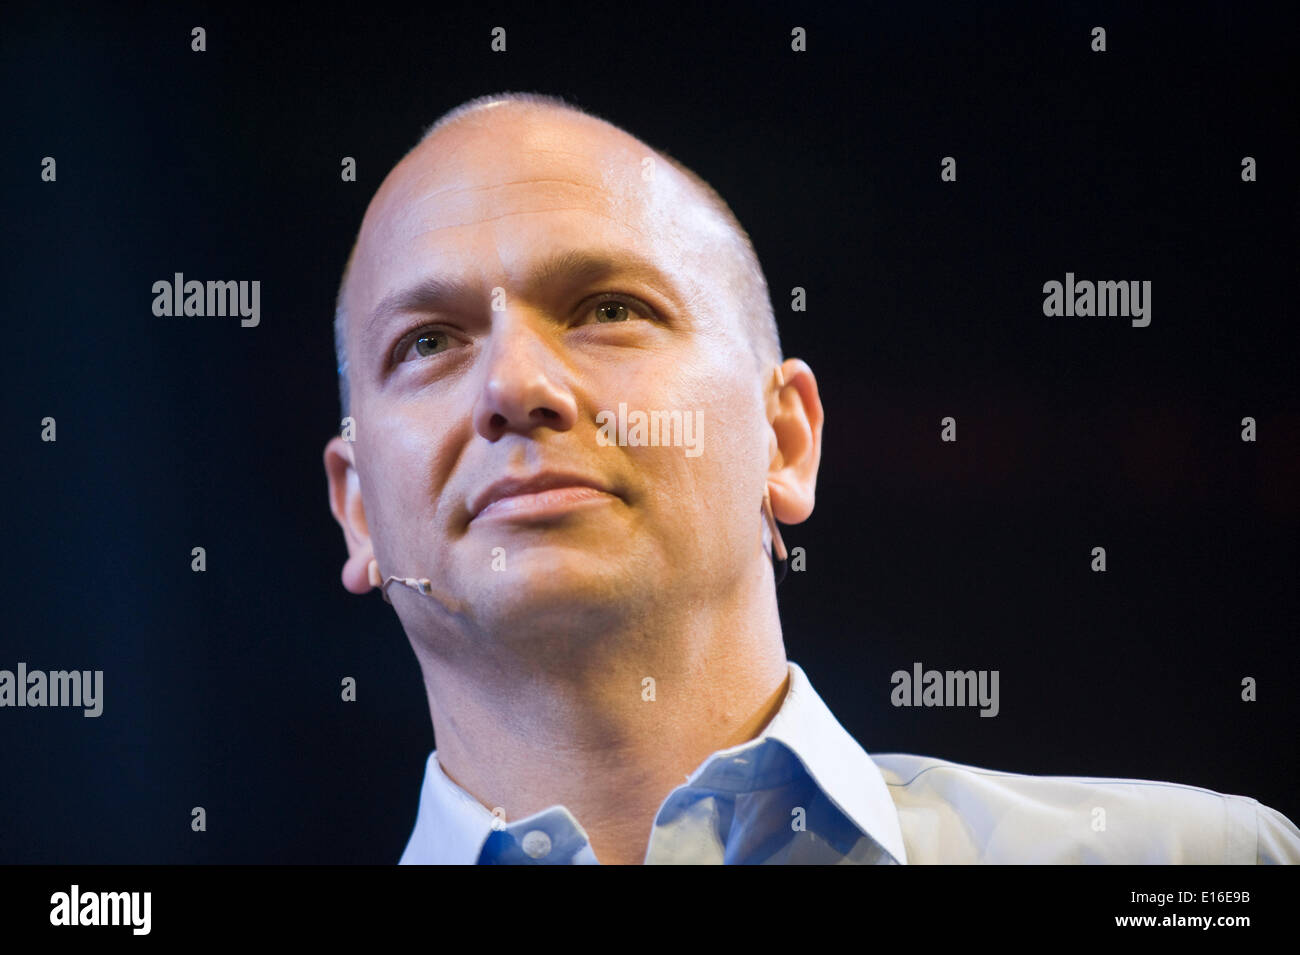 Tony Fadell, creator of the iPod, speaking on stage at Hay Festival 2014   ©Jeff Morgan - Stock Image